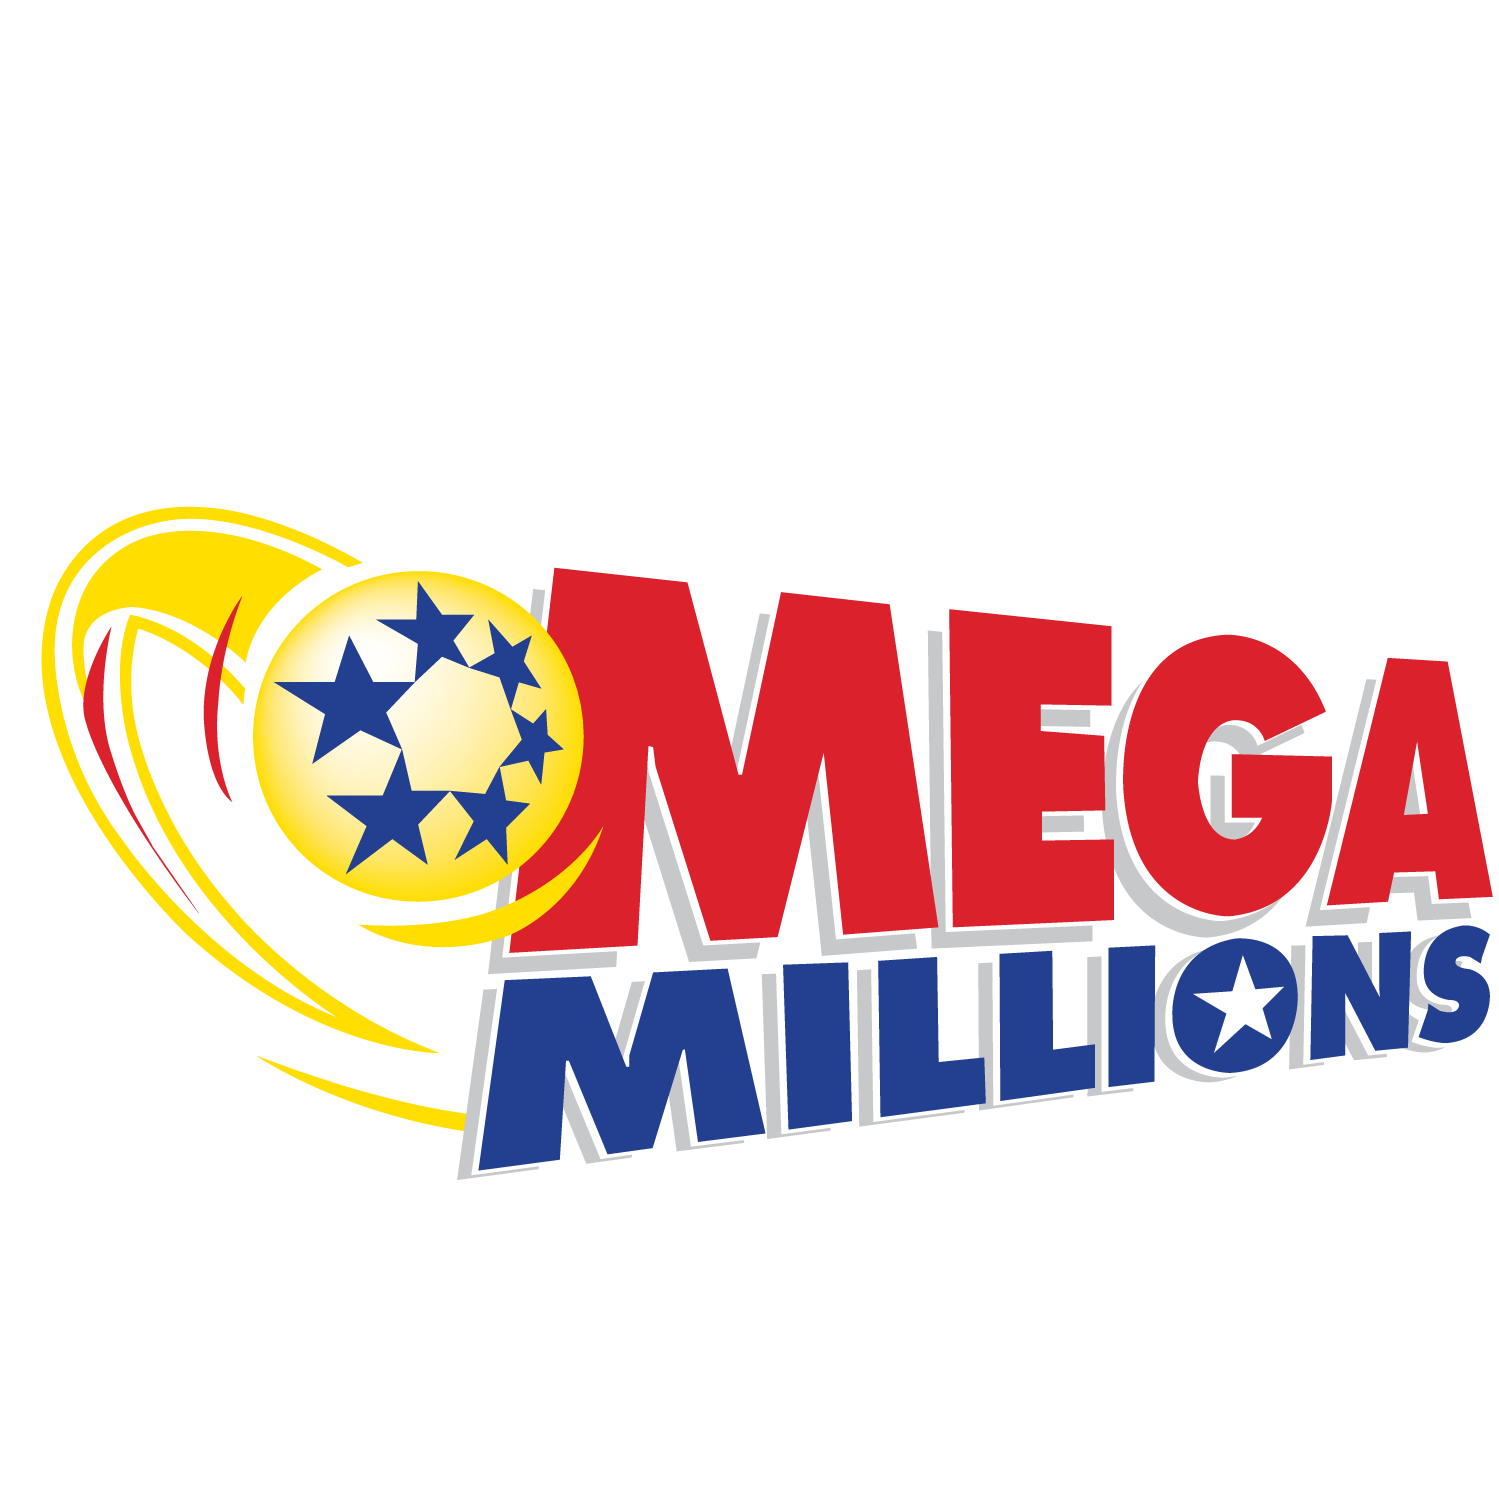 Mega Millions lottery soars to second-highest U.S. jackpot in history: $868 million